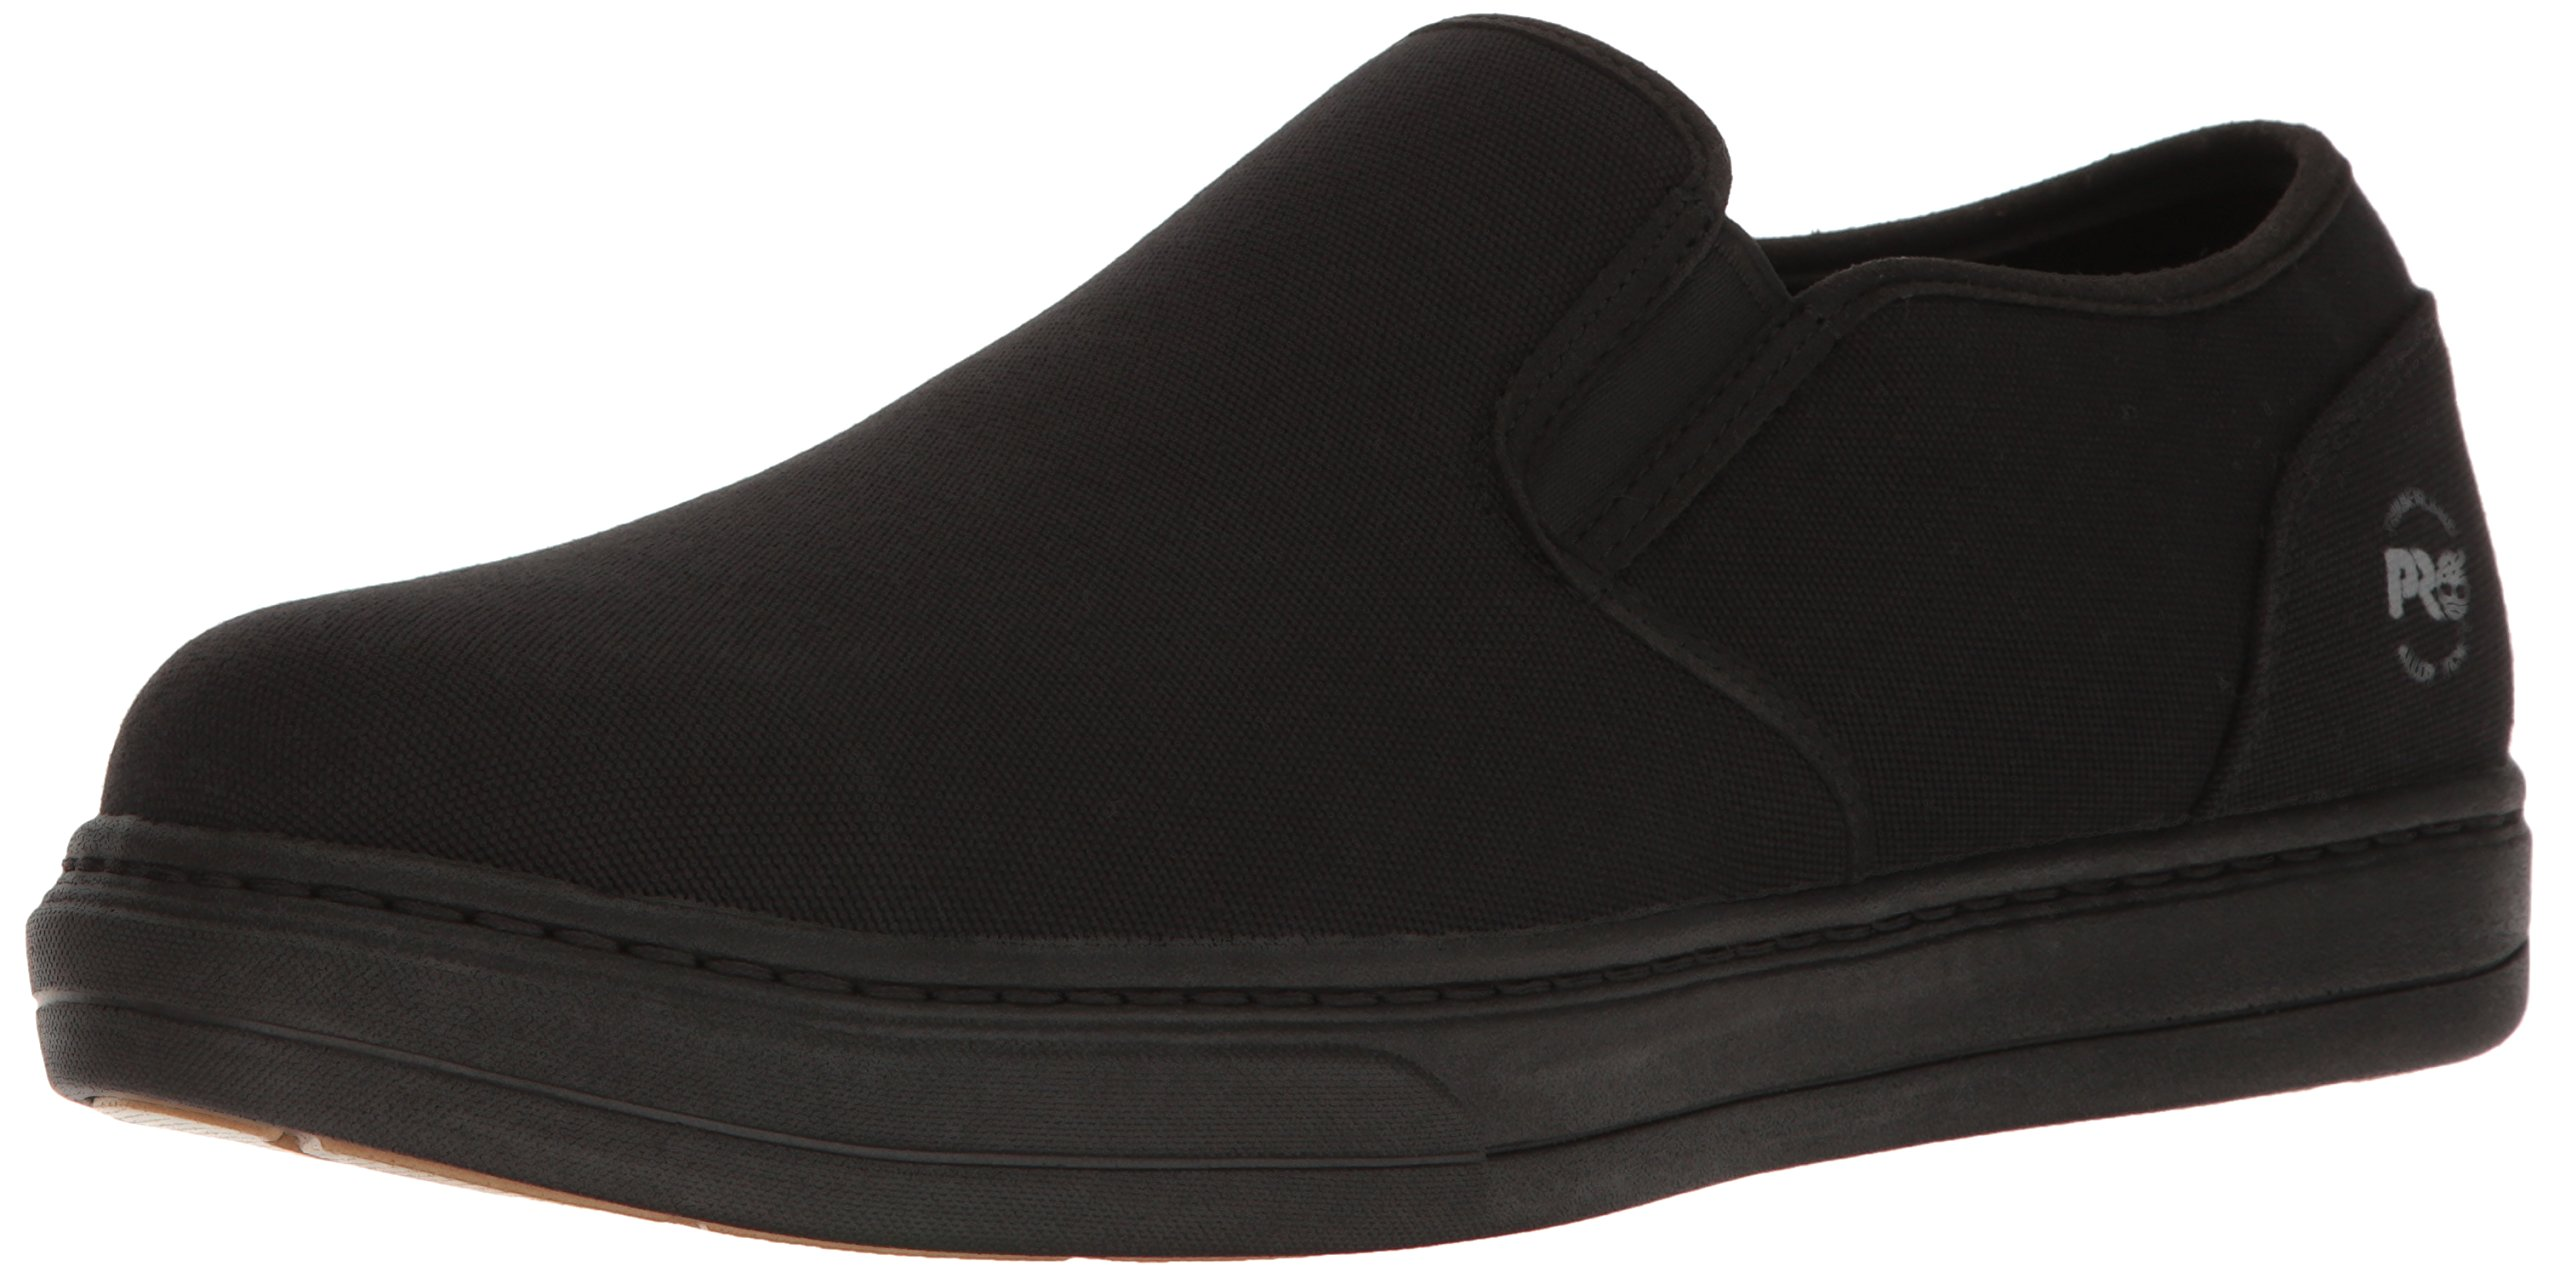 Timberland PRO Men's Disruptor Slip-on Alloy Safety Toe EH Industrial and Construction Shoe, Black/Black Canvas, 8 M US